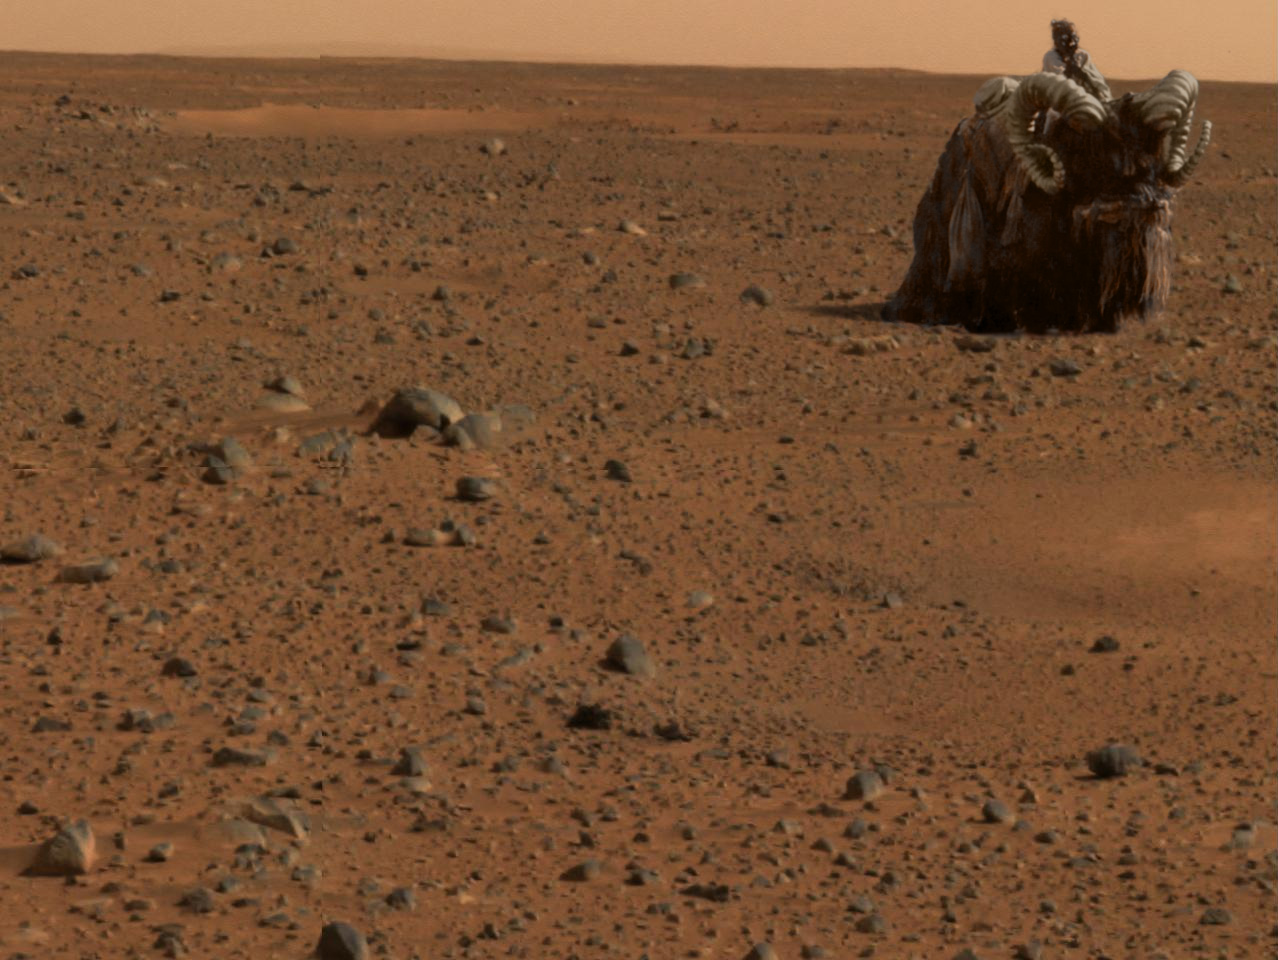 curiosity rover on mars background - photo #15